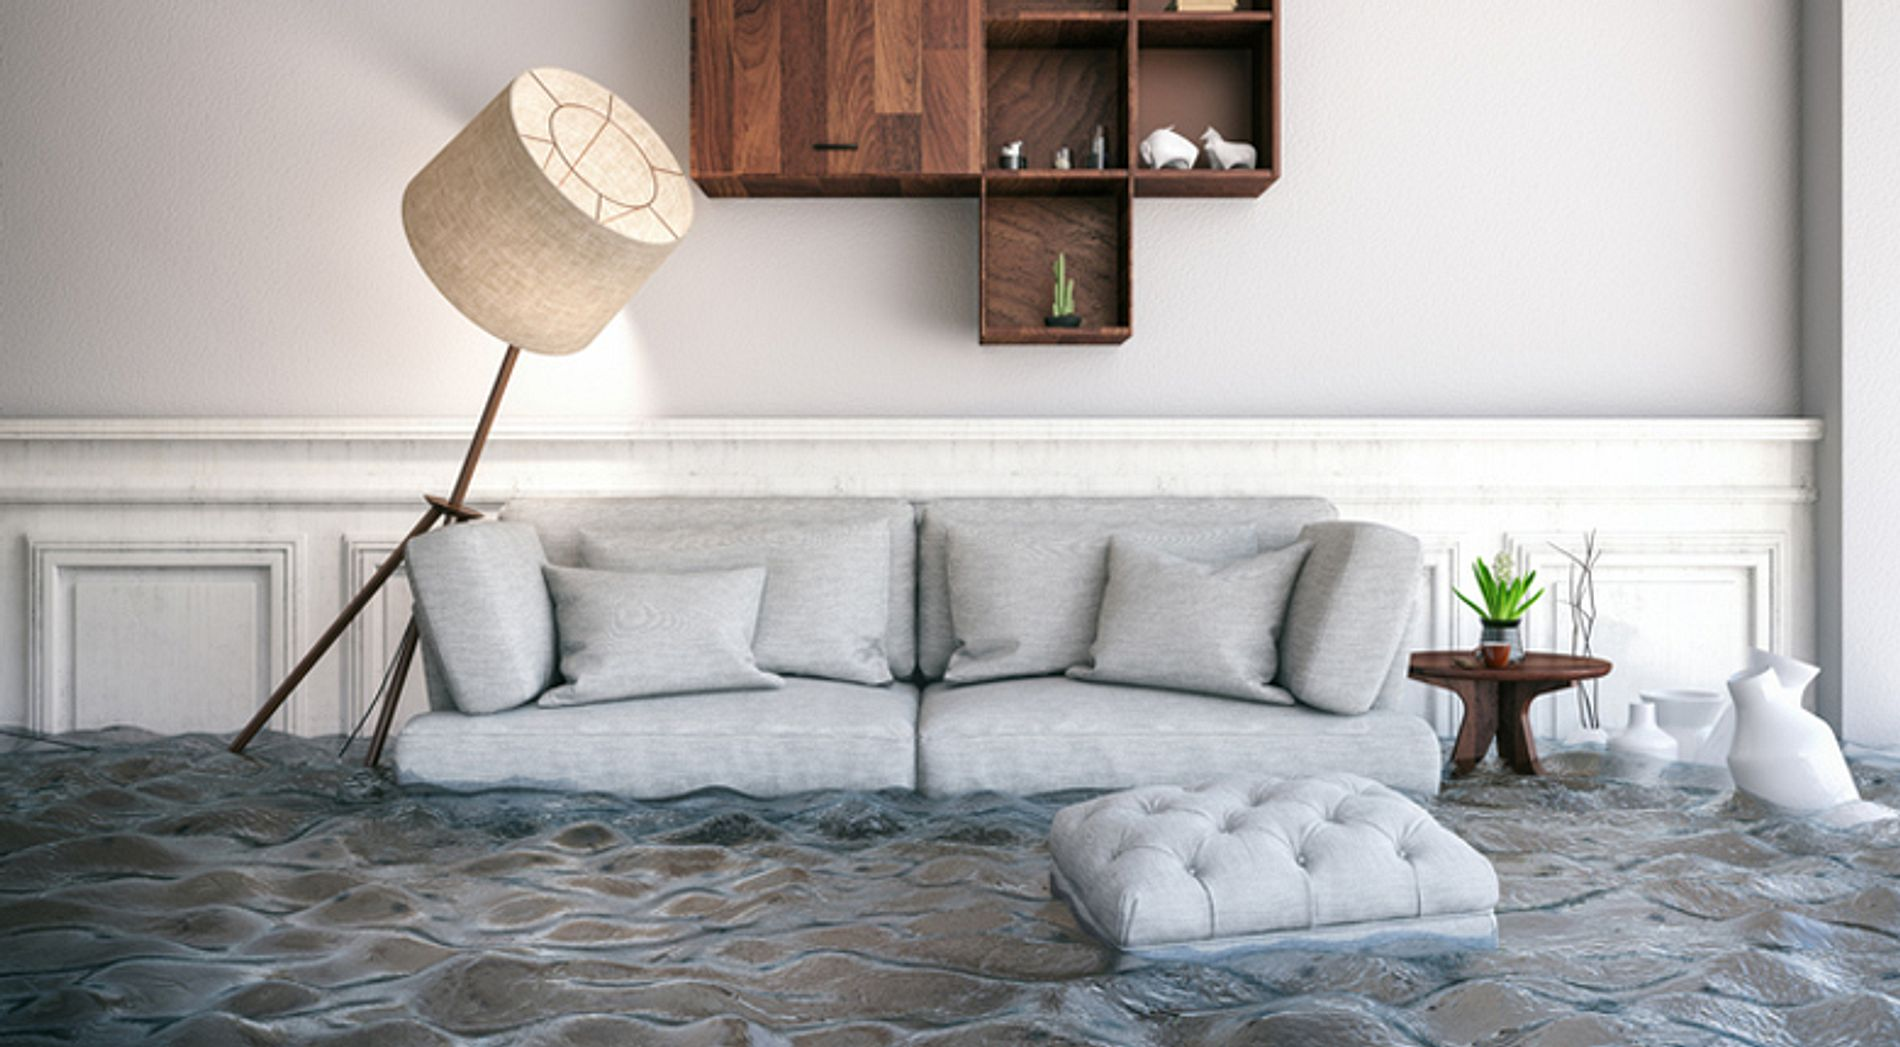 Living room flooded with water and floating furniture